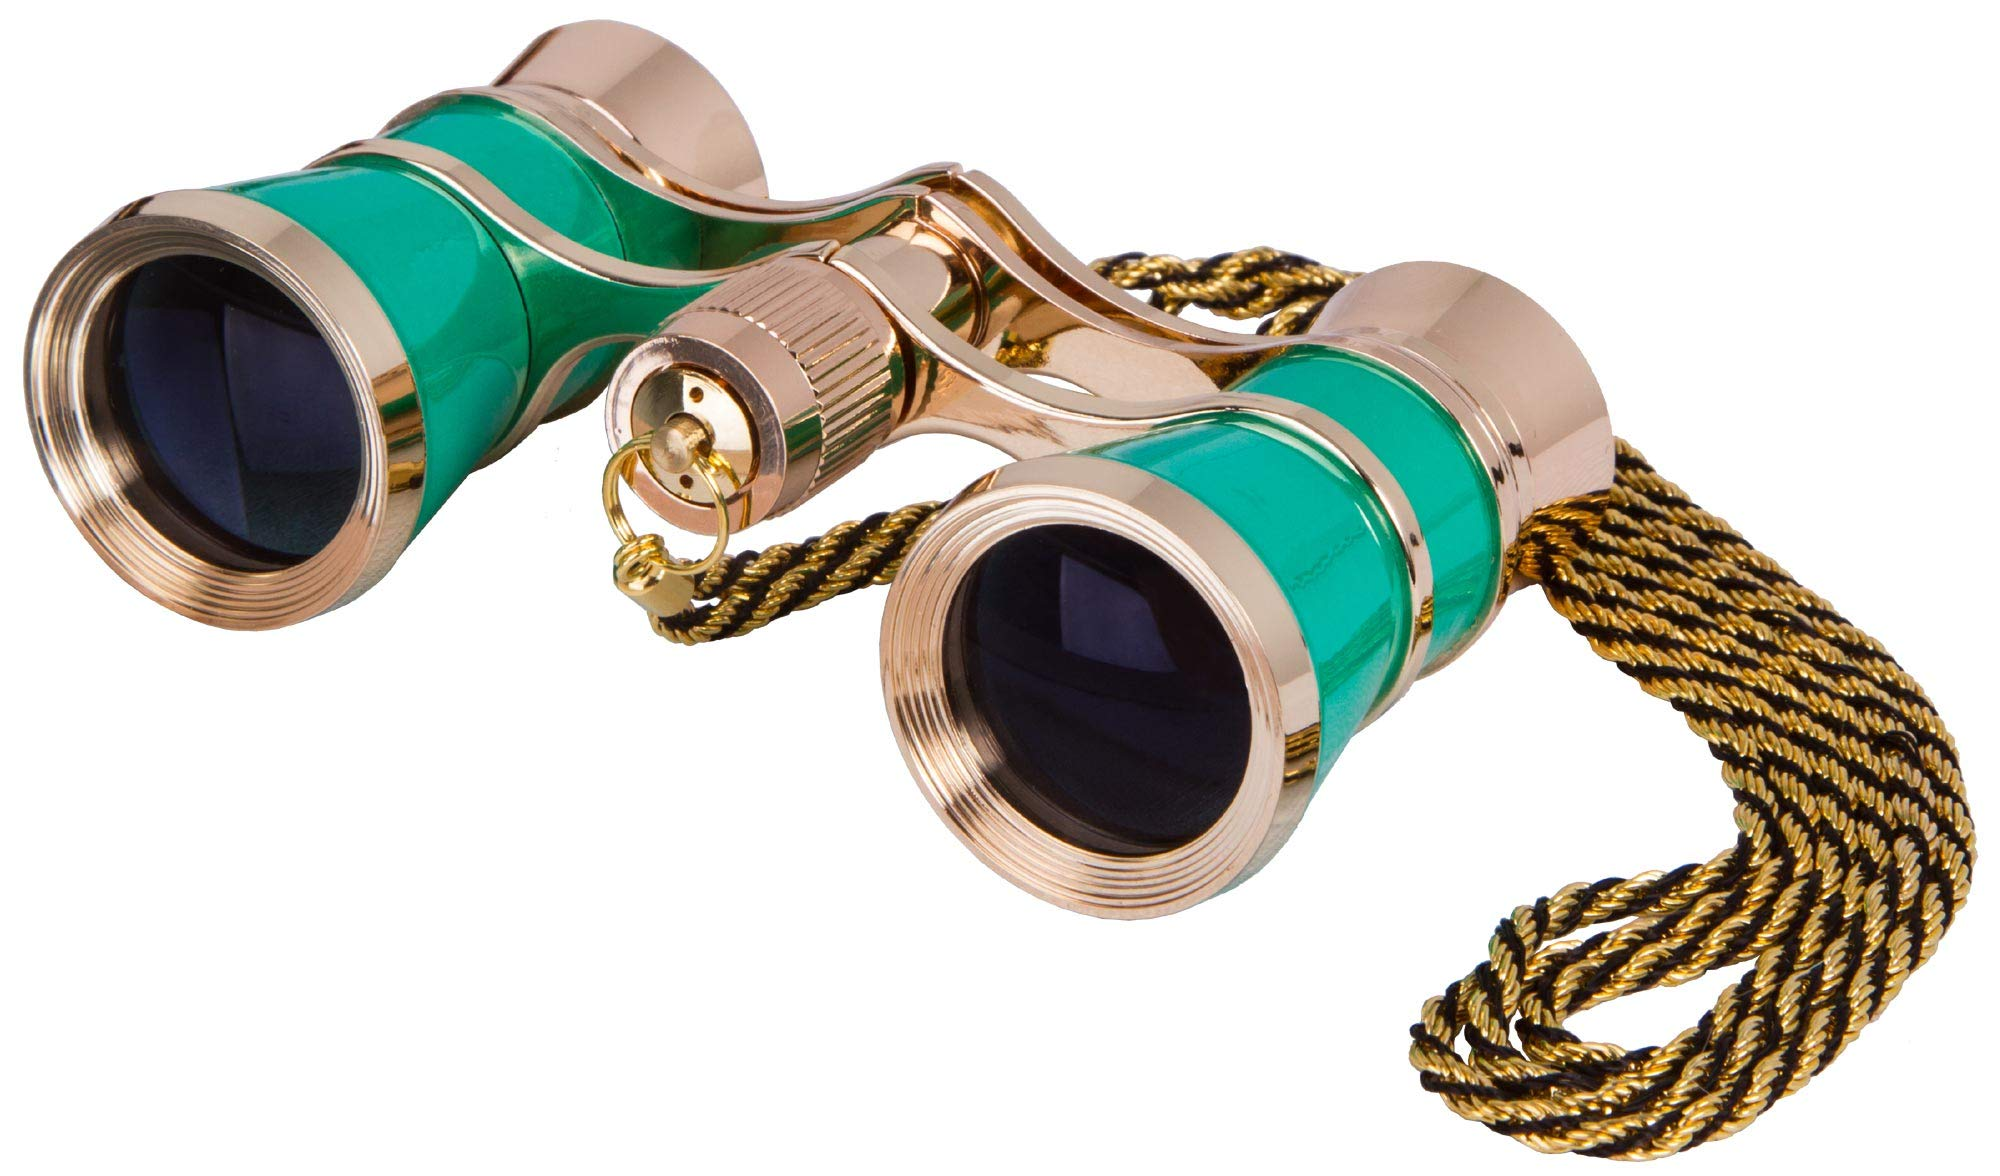 Levenhuk Broadway 325C Lime Opera Glasses - Theater Binoculars with Removable Chain by Levenhuk